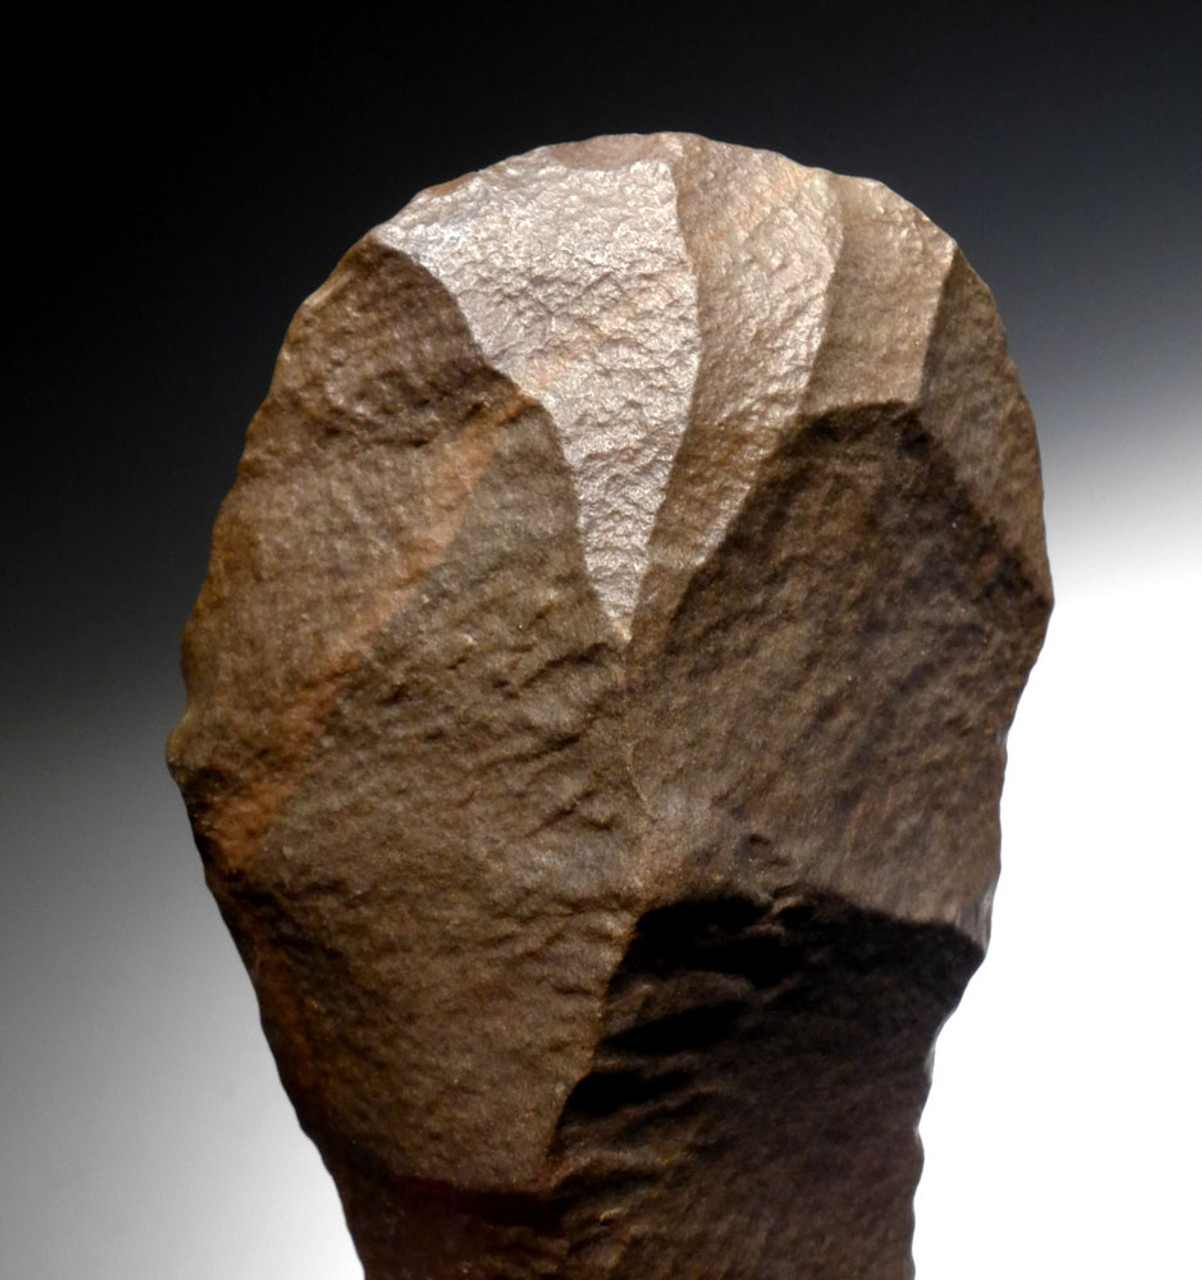 COLORFUL CHOICE ACHEULEAN TRIHEDRAL PICK HAND AXE FROM HOMO ERECTUS OF STONE AGE OF AFRICA  *ACH427